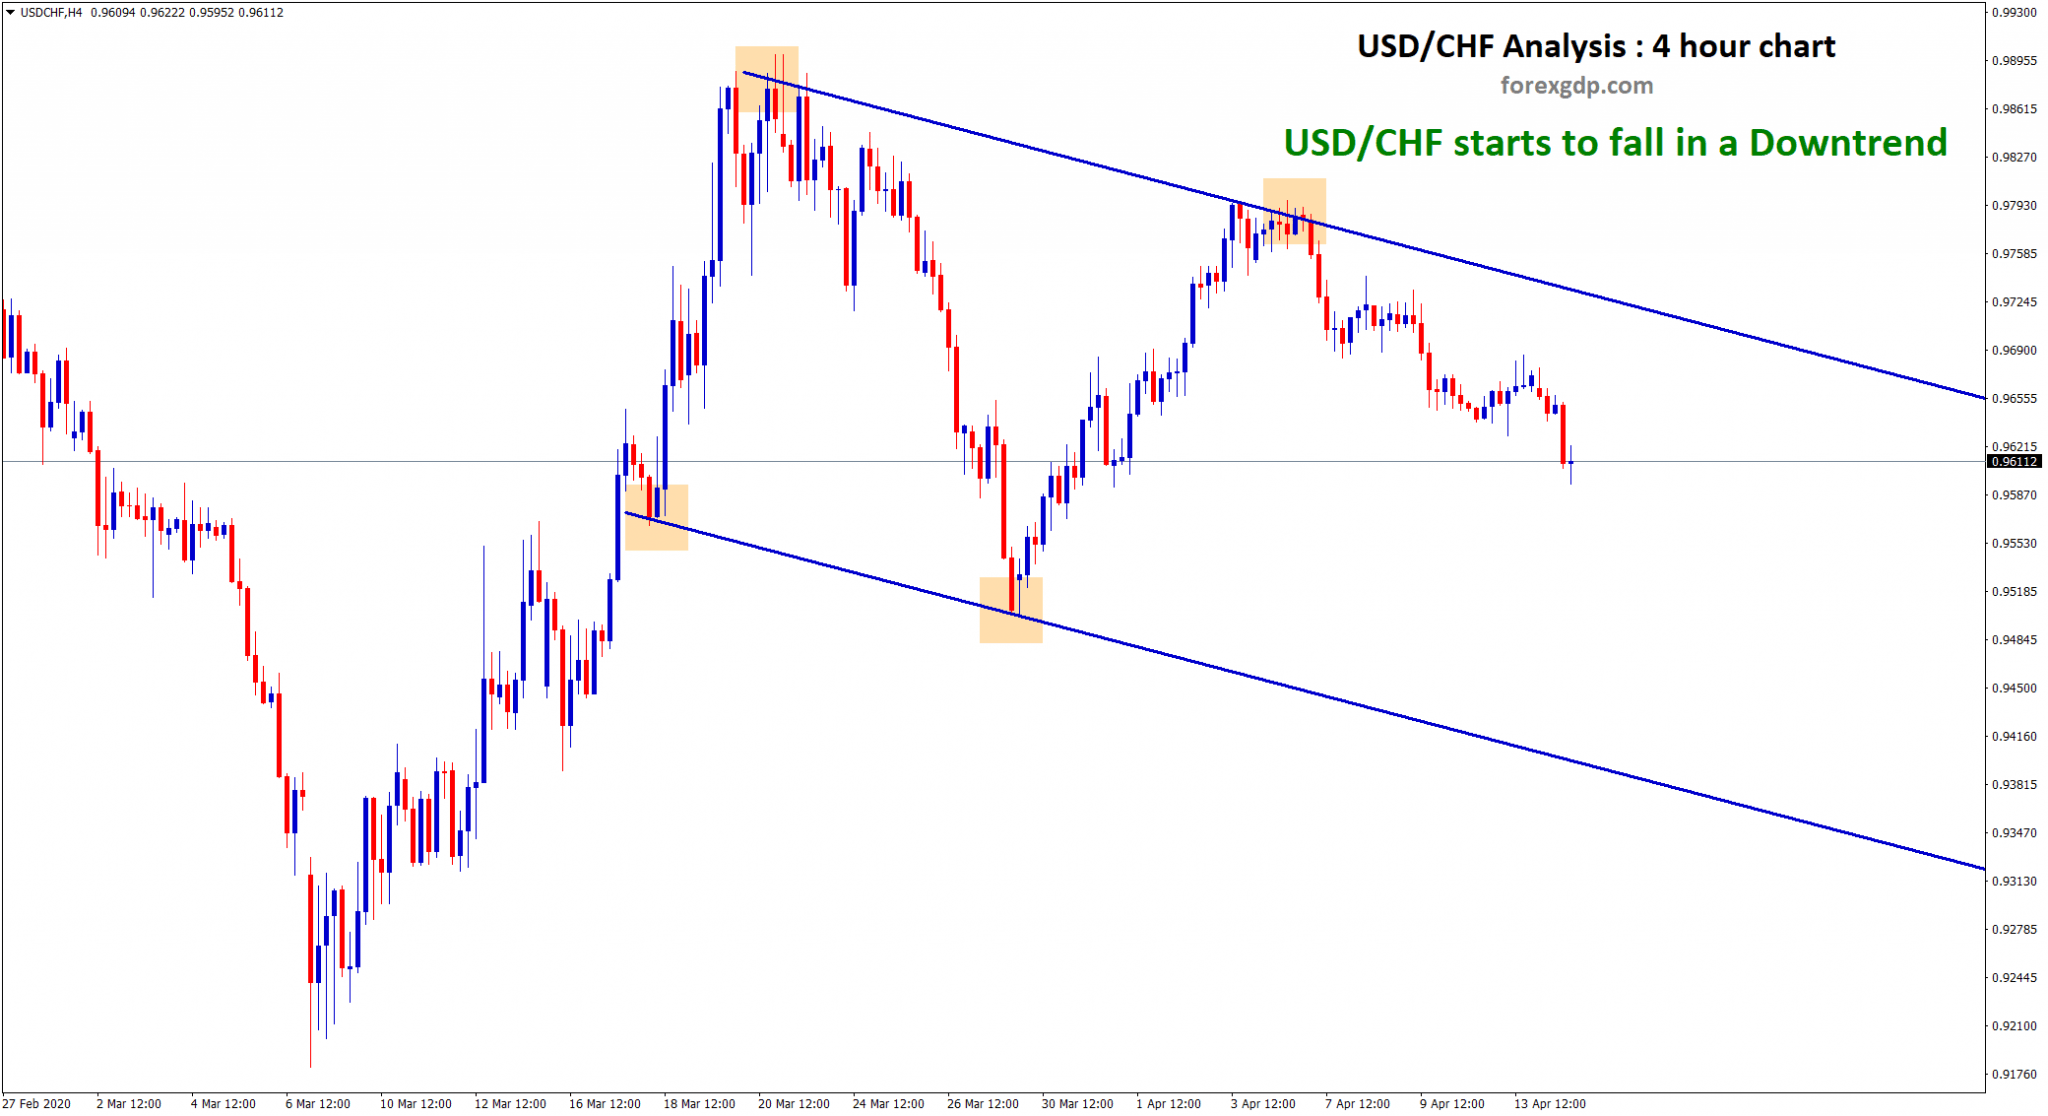 USD CHF fall down in a down trend range on 4 hour chart